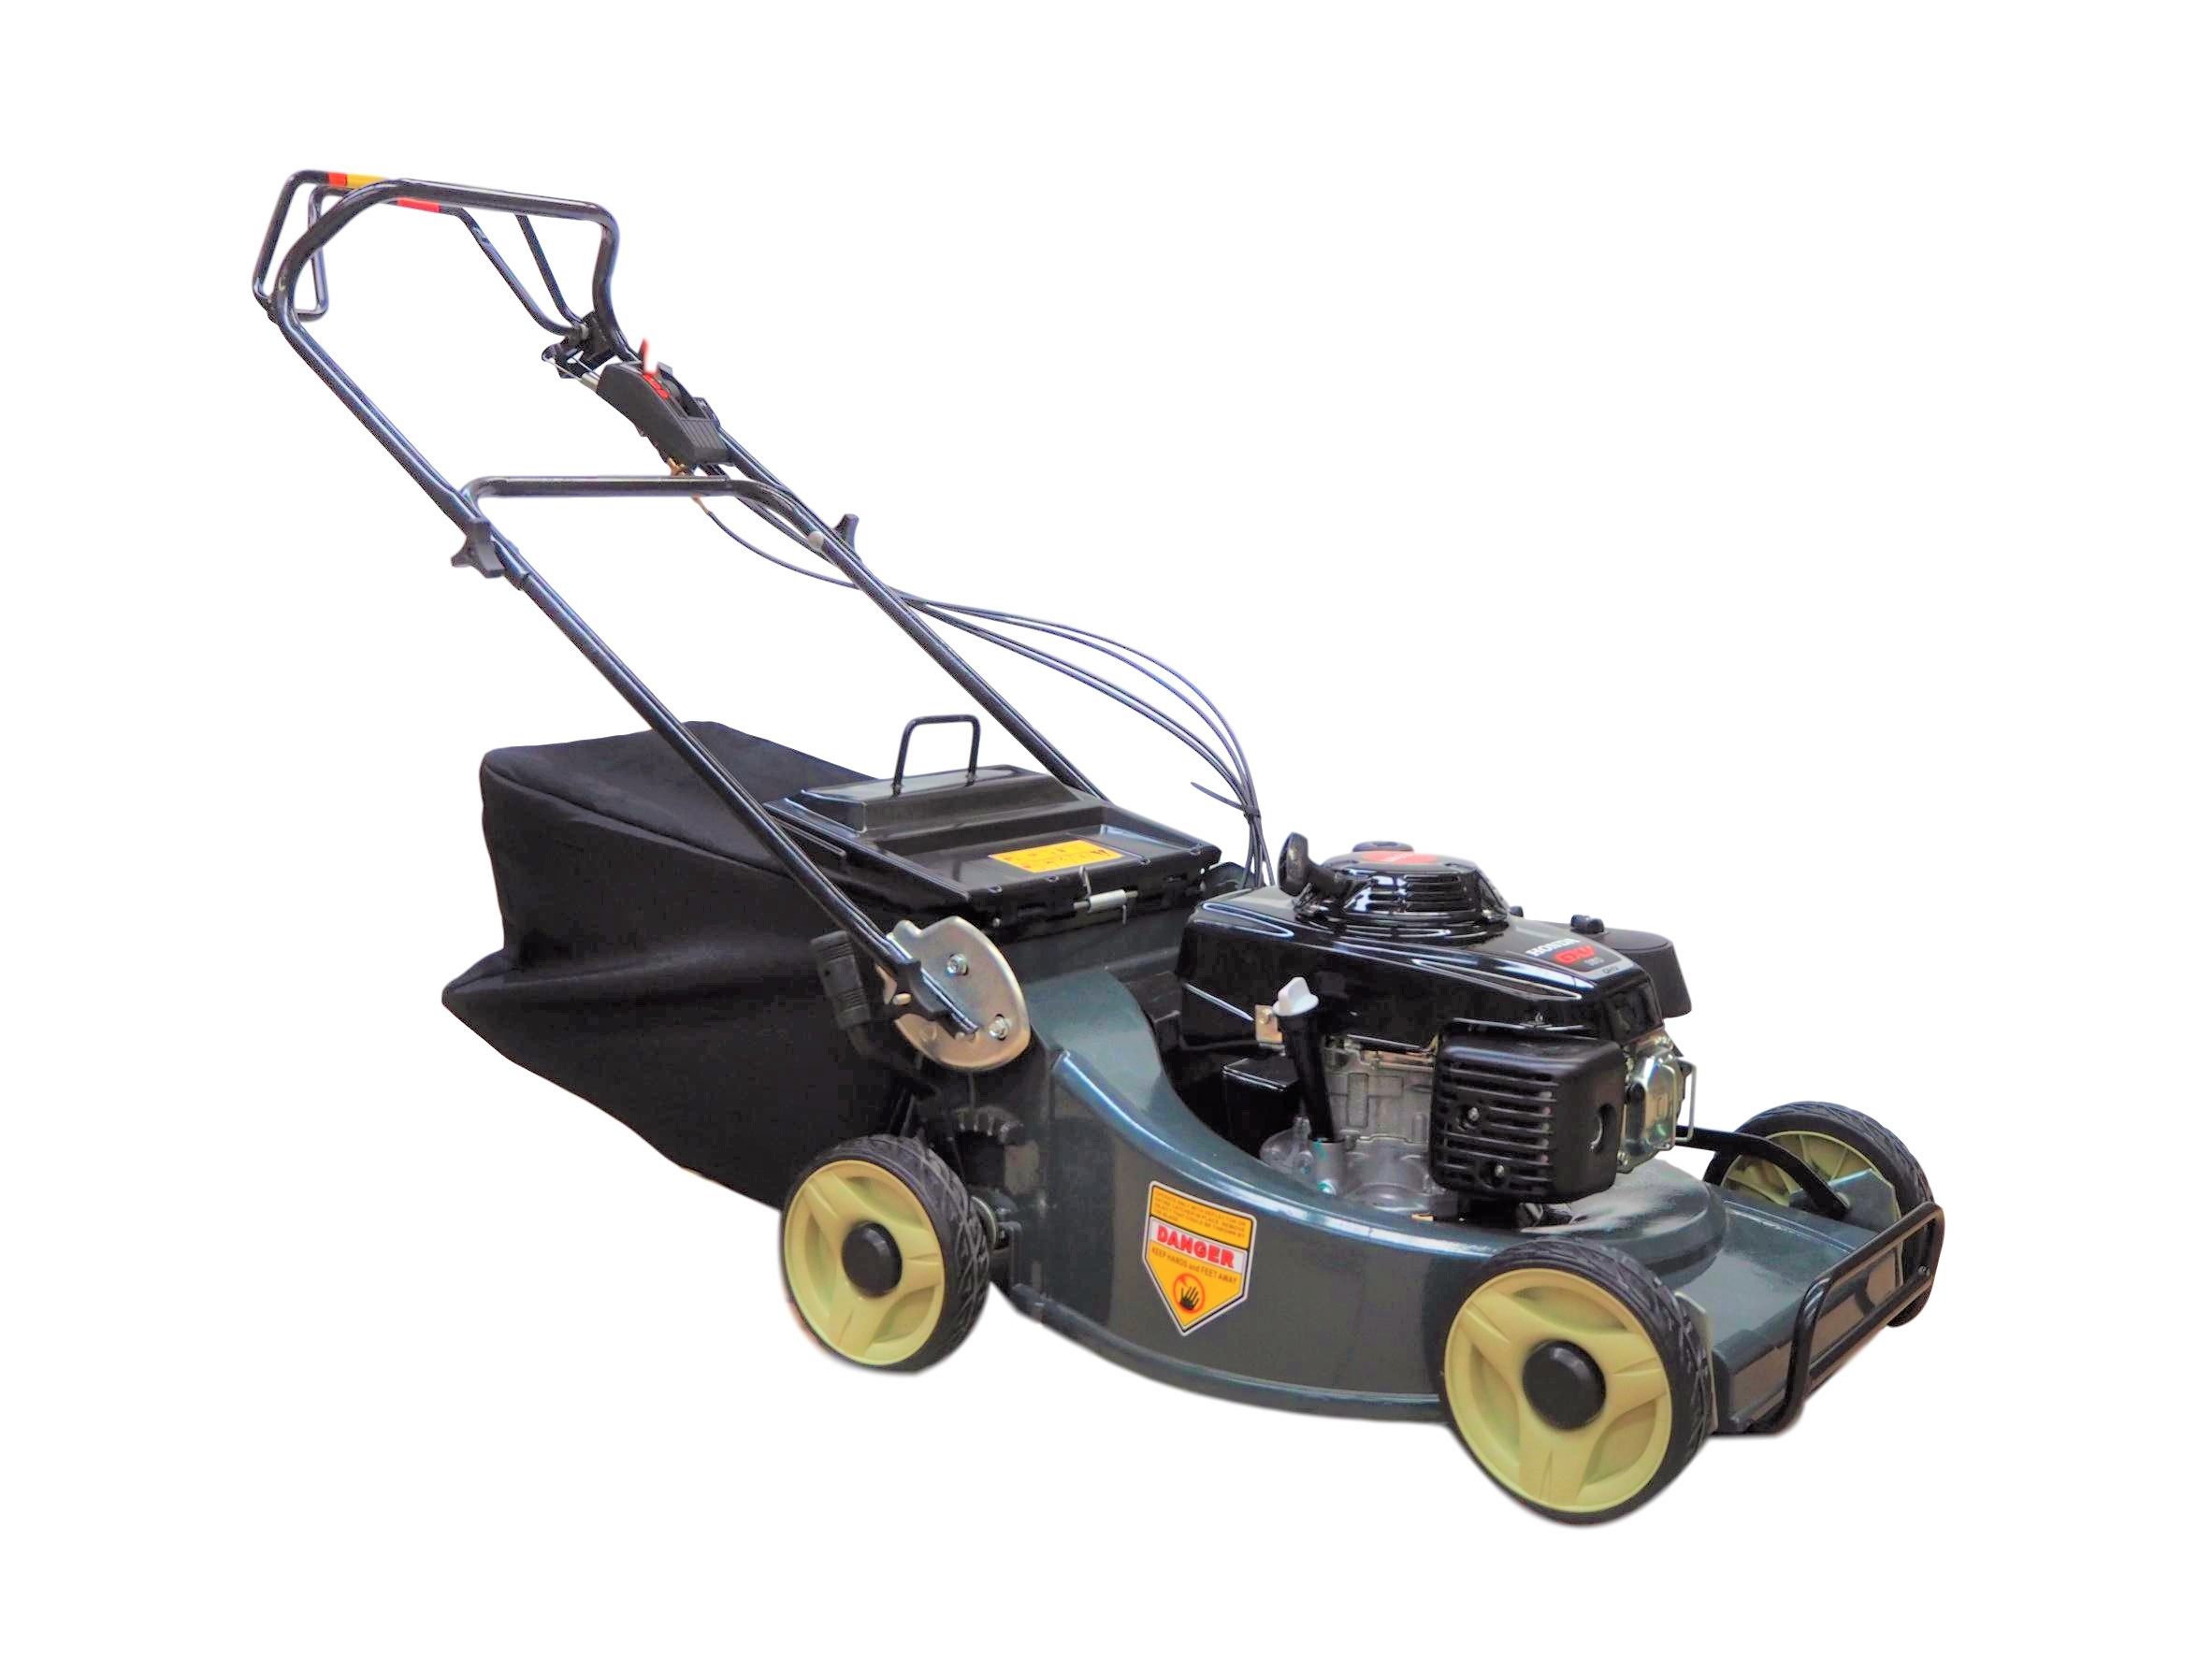 parts lawn engine mower of diagram get wiring honda small wallpapers wiki harness image free about